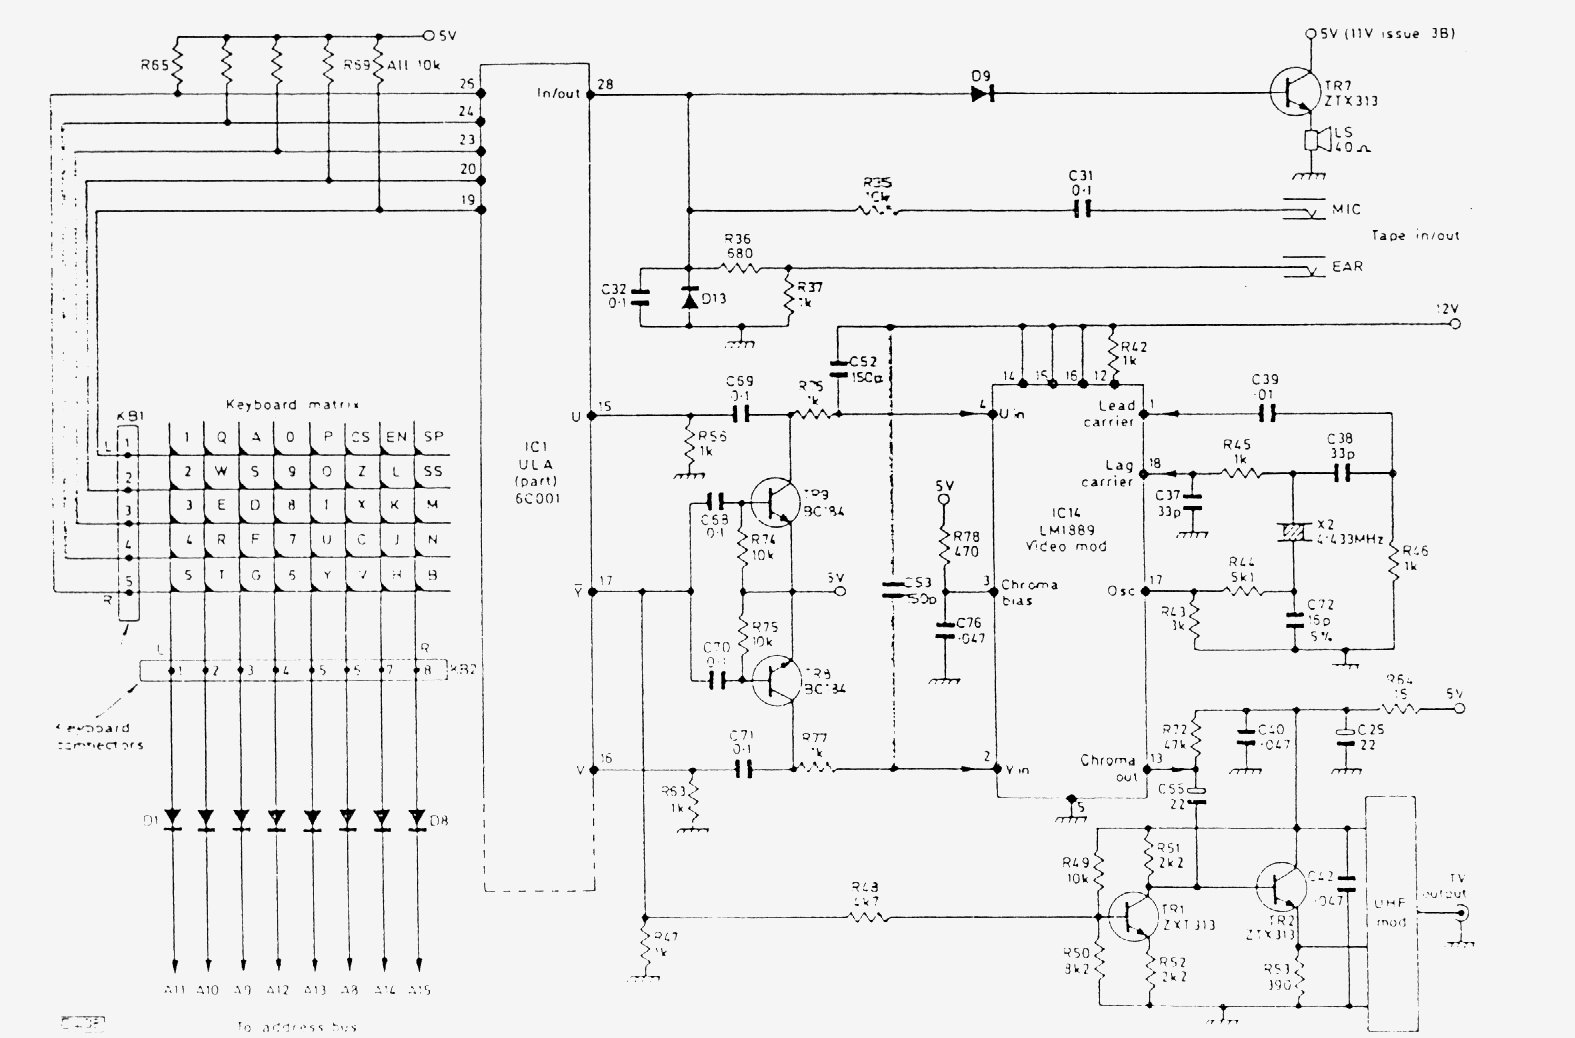 hight resolution of fig5 final part of the spectrum issue 3 circuit diagram showing the keyboard matrix the tape input and output and the video and tv output circuitry